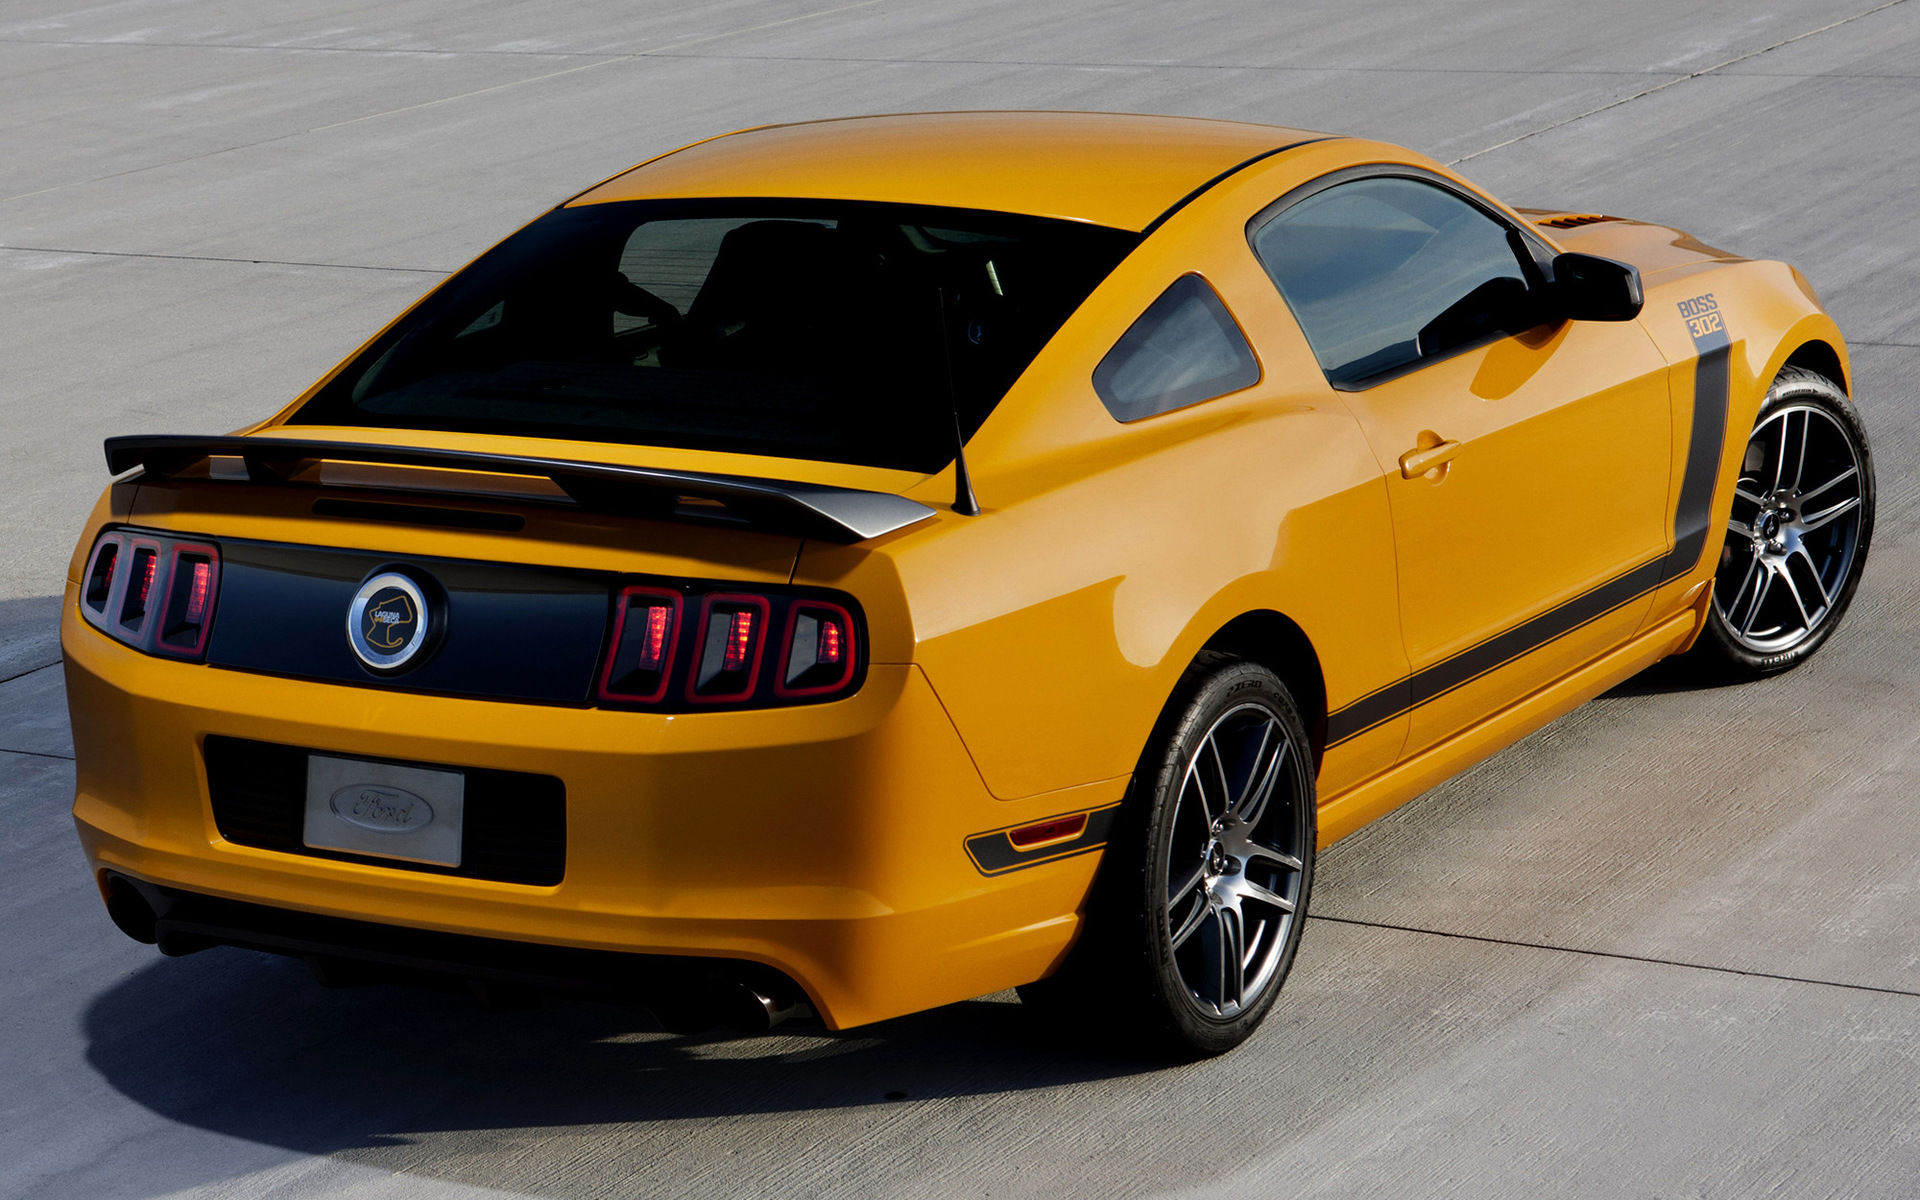 2012 Ford Mustang Boss 302 Wallpapers And Hd Images